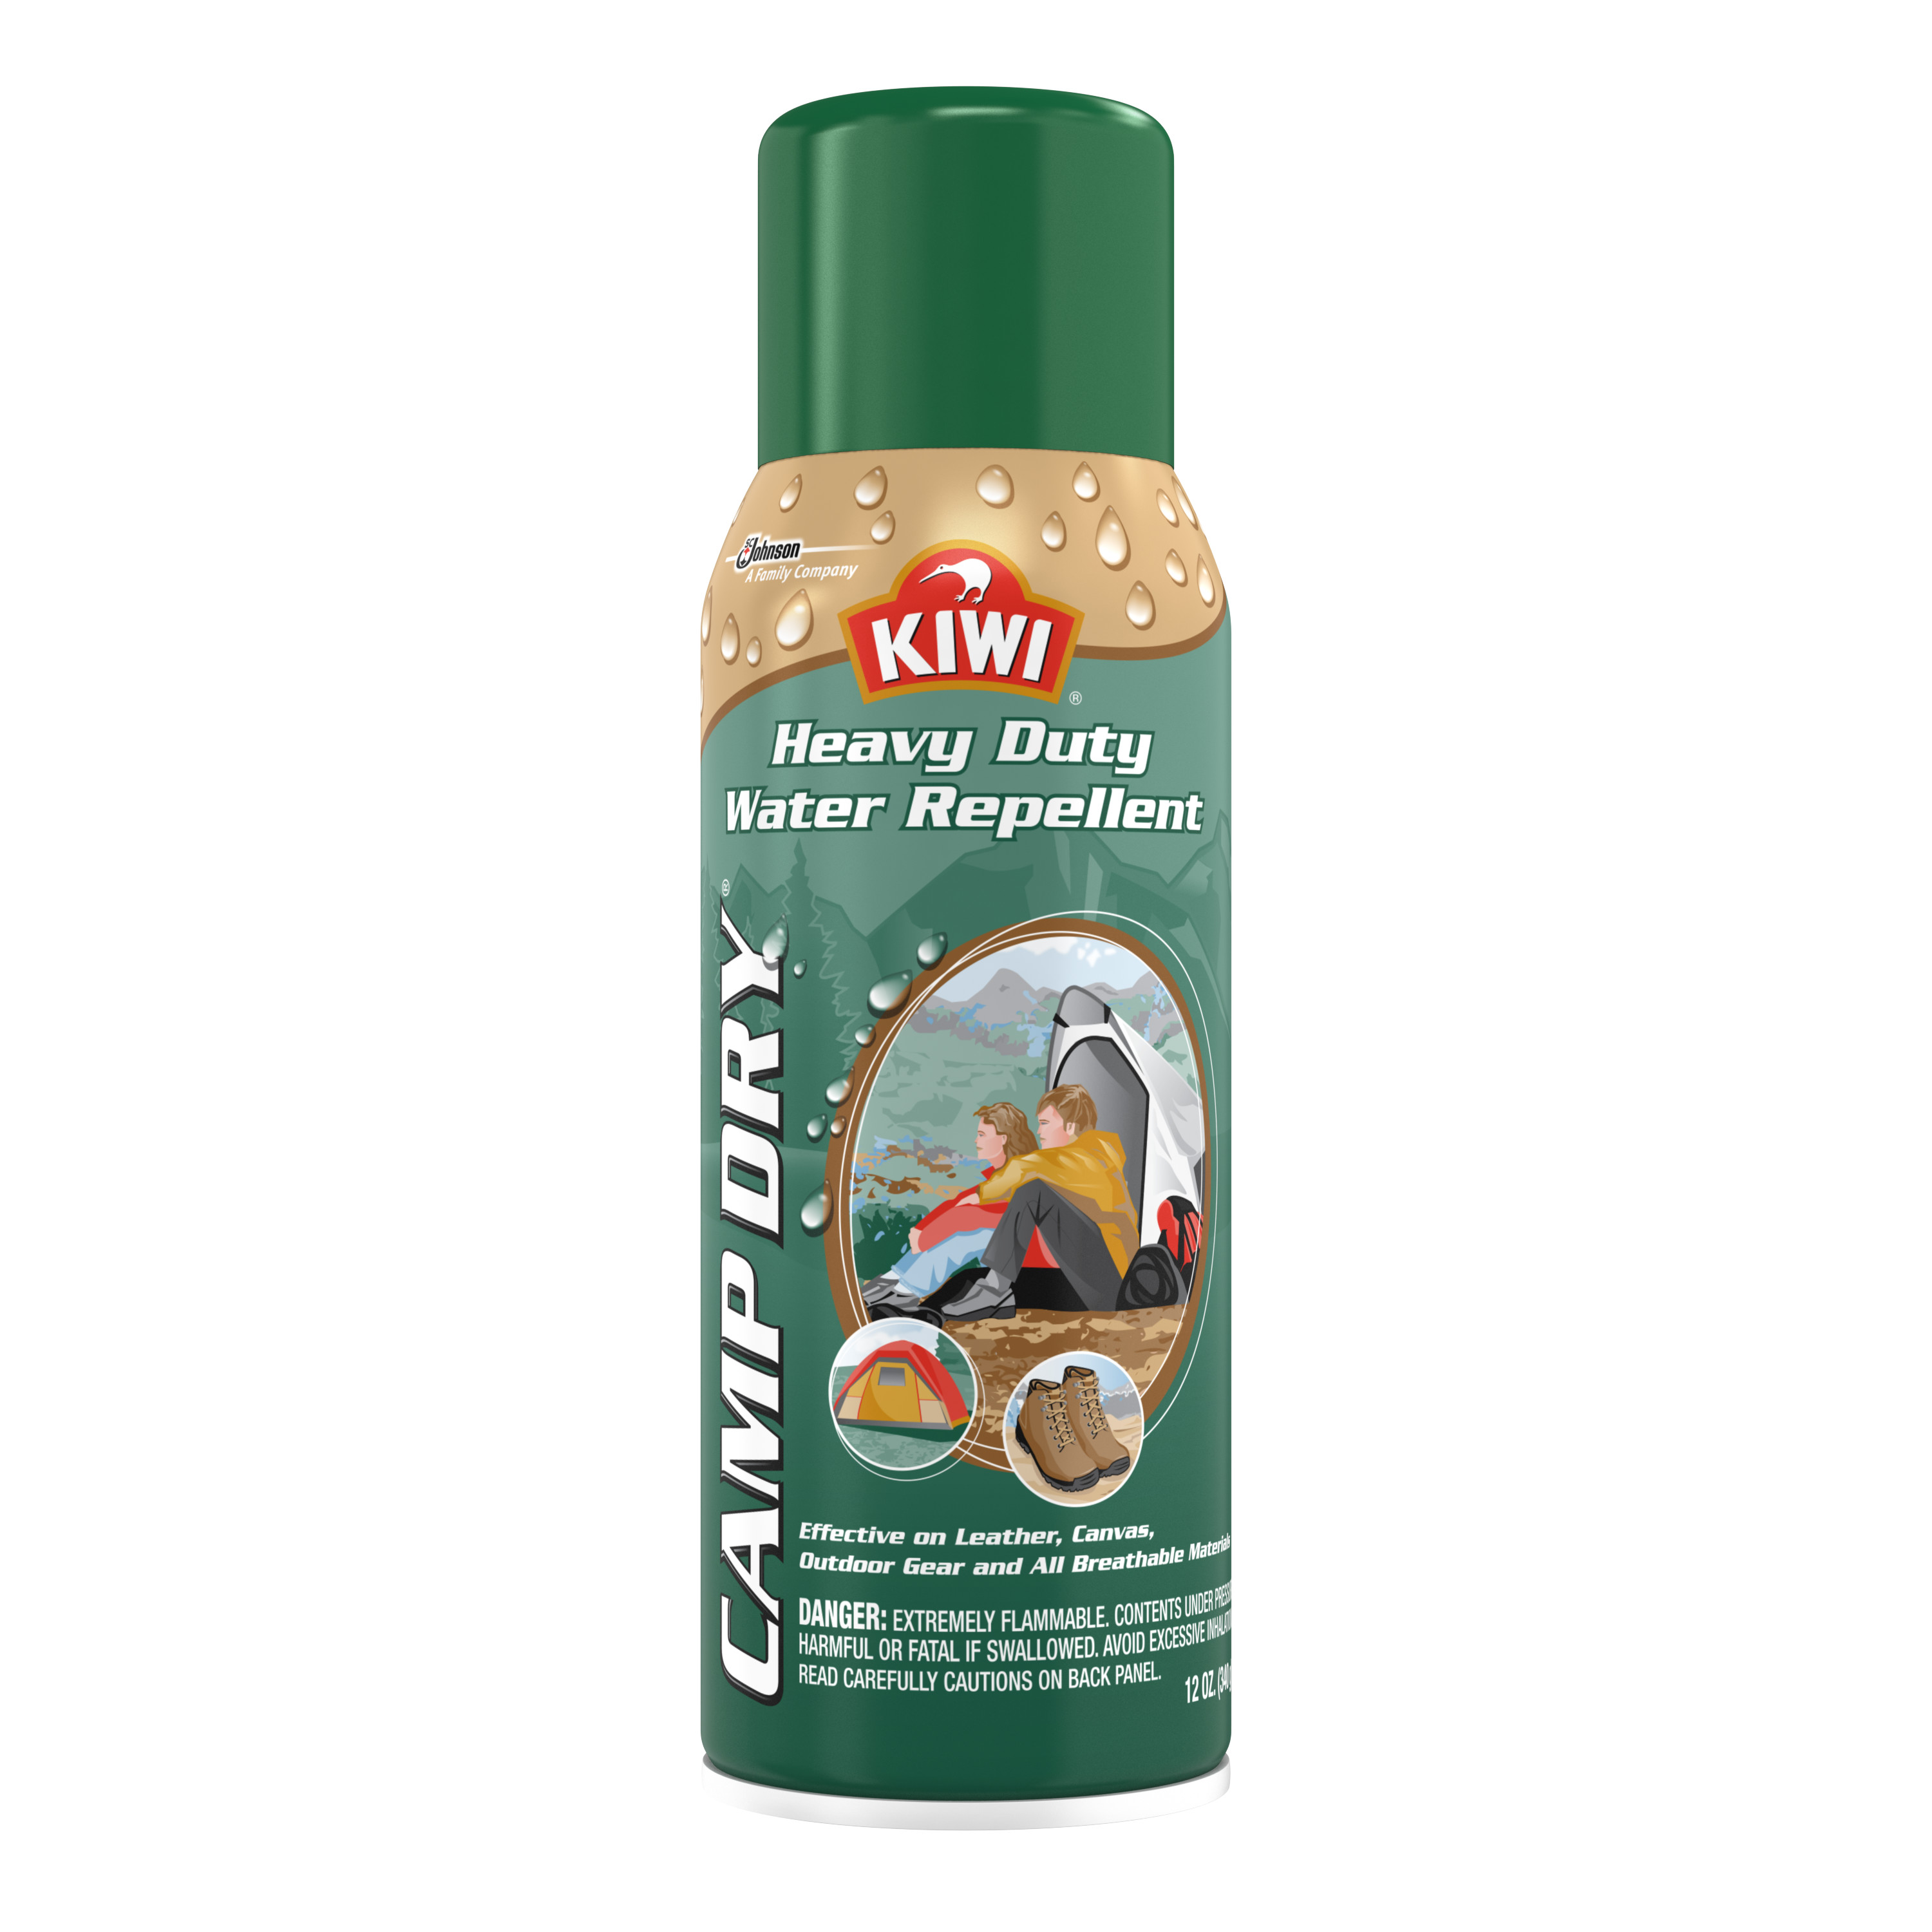 KIWI Camp Dry Heavy Duty Water Repellent 12 Ounces